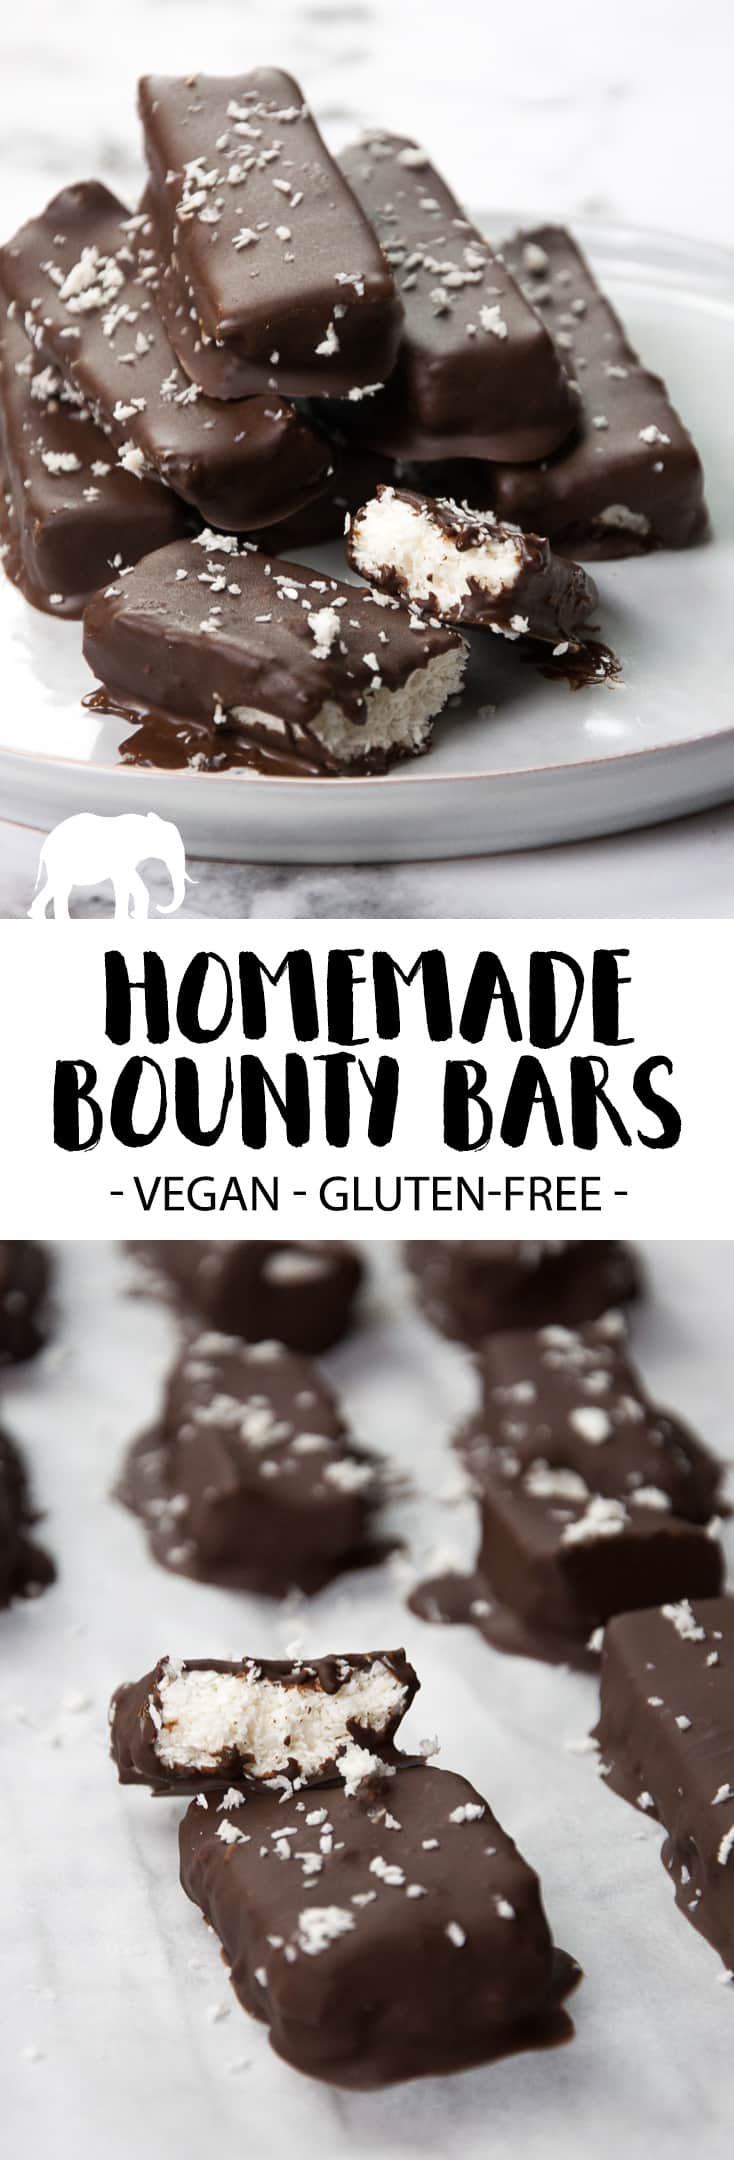 Vegan and gluten-free homemade Bounty Bars #vegan #glutenfree #bounty #dessert #sweet #coconut